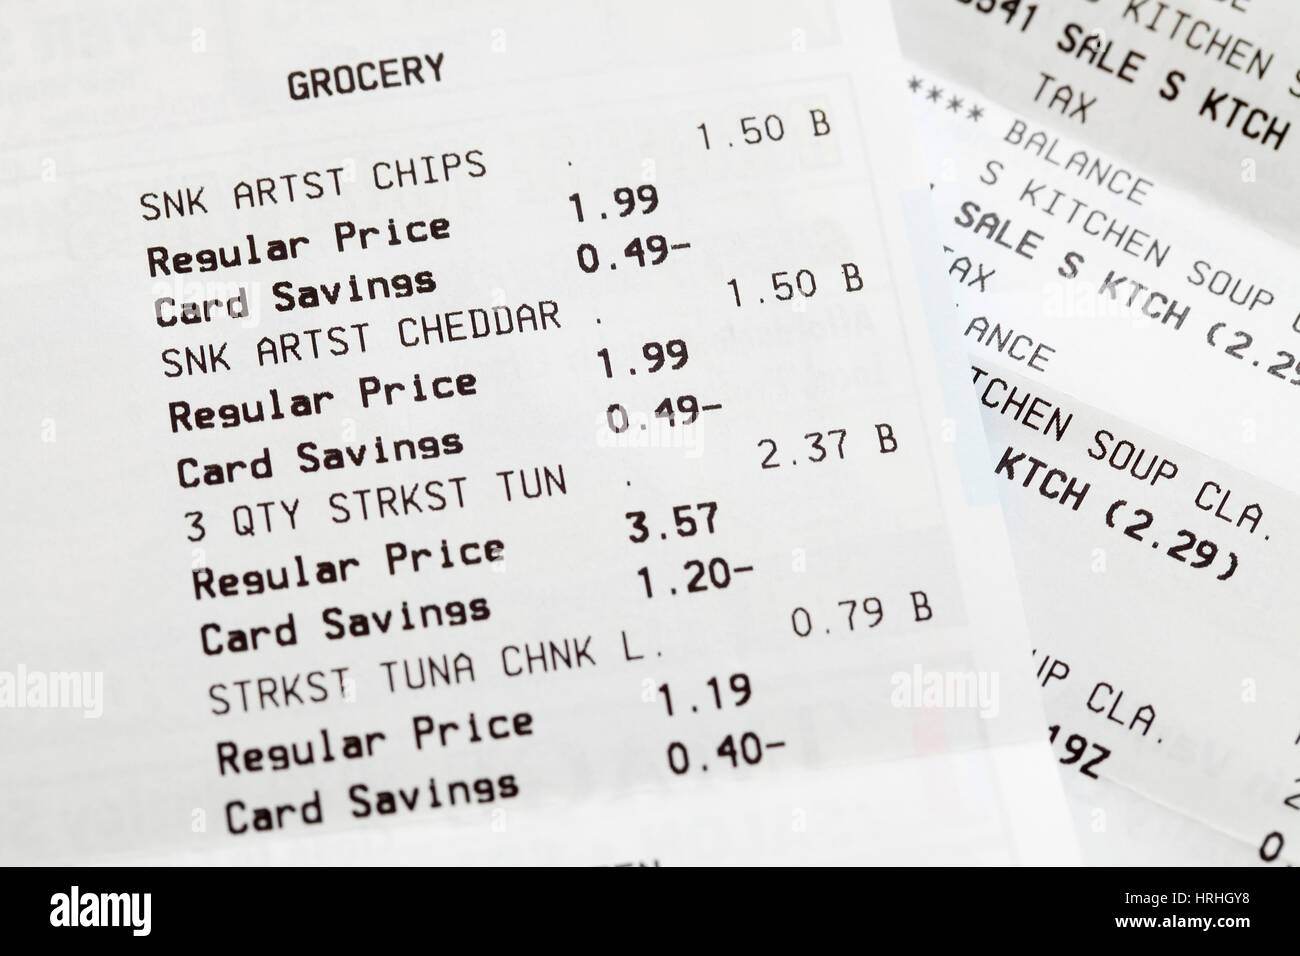 grocery receipts stock photos grocery receipts stock images alamy